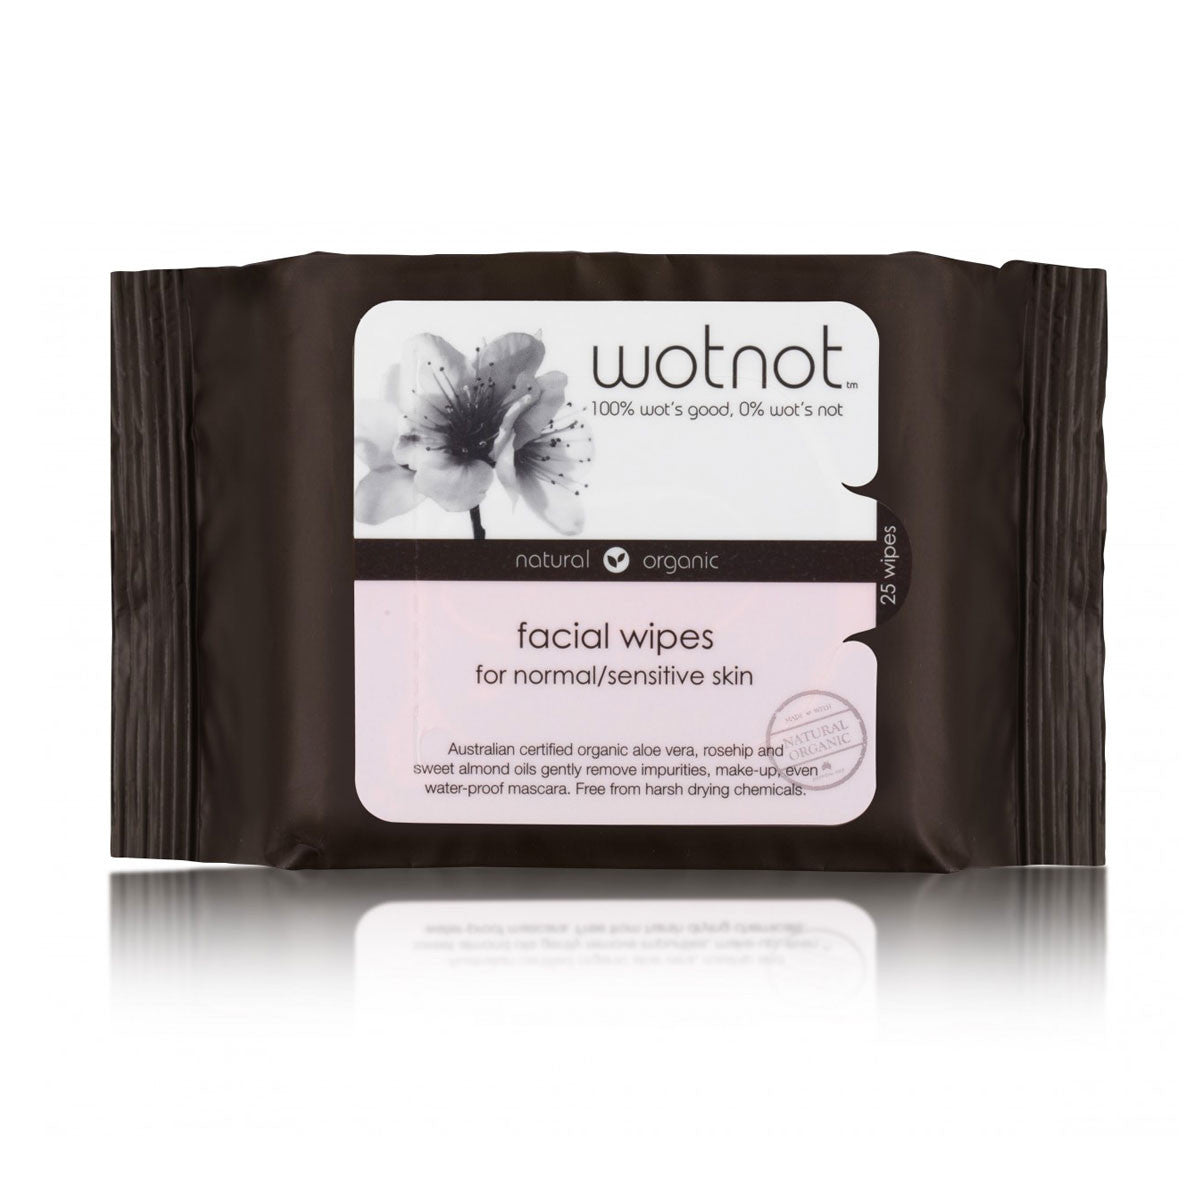 Wotnot Facial Wipes Natural Makeup Removers 25 Wipes   - Wotnot - Little Earth Nest